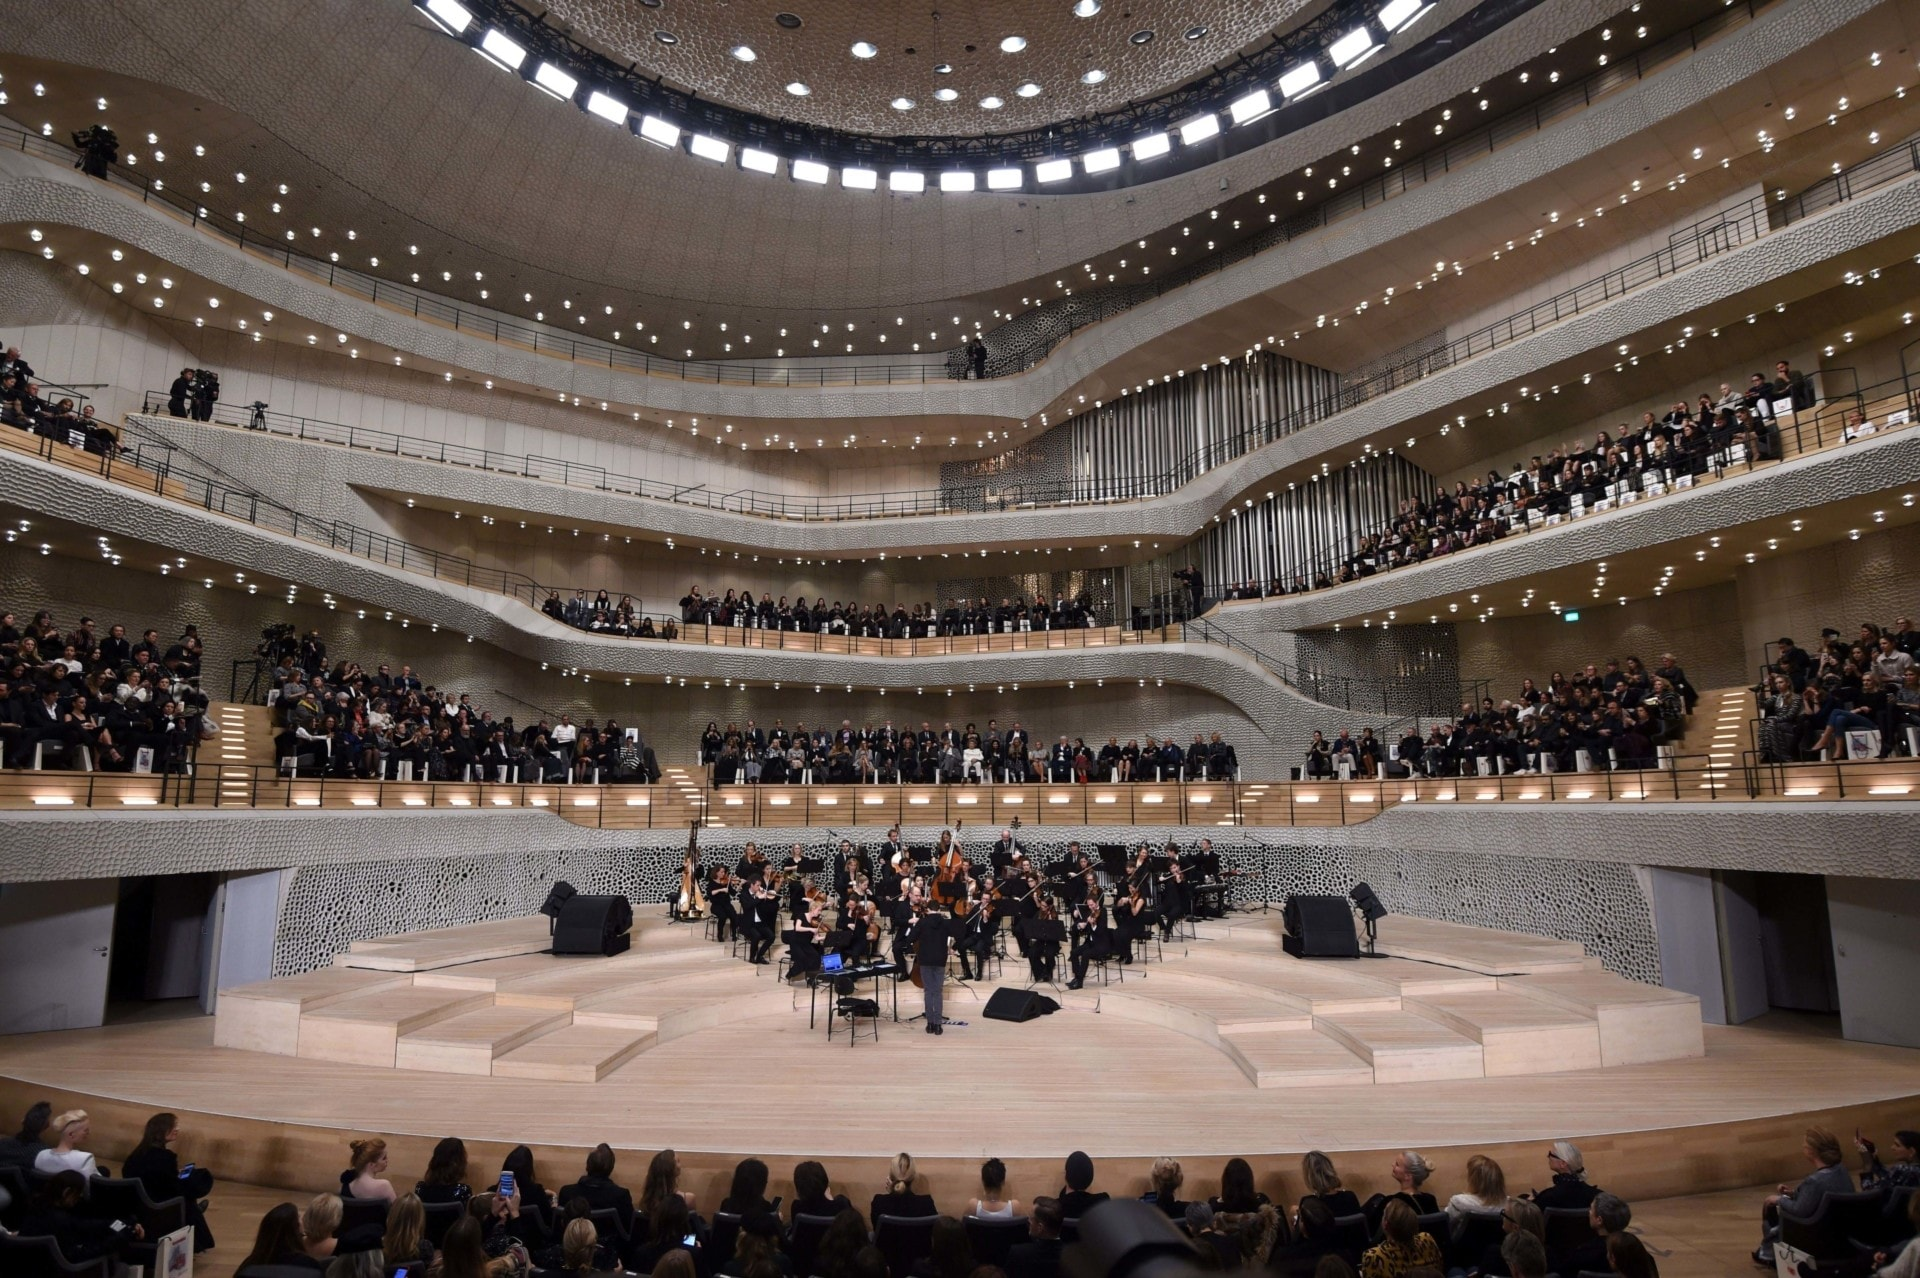 Inside the spectacular Hamburg concert hall which hosted the Chanel pre-fall 2018 show